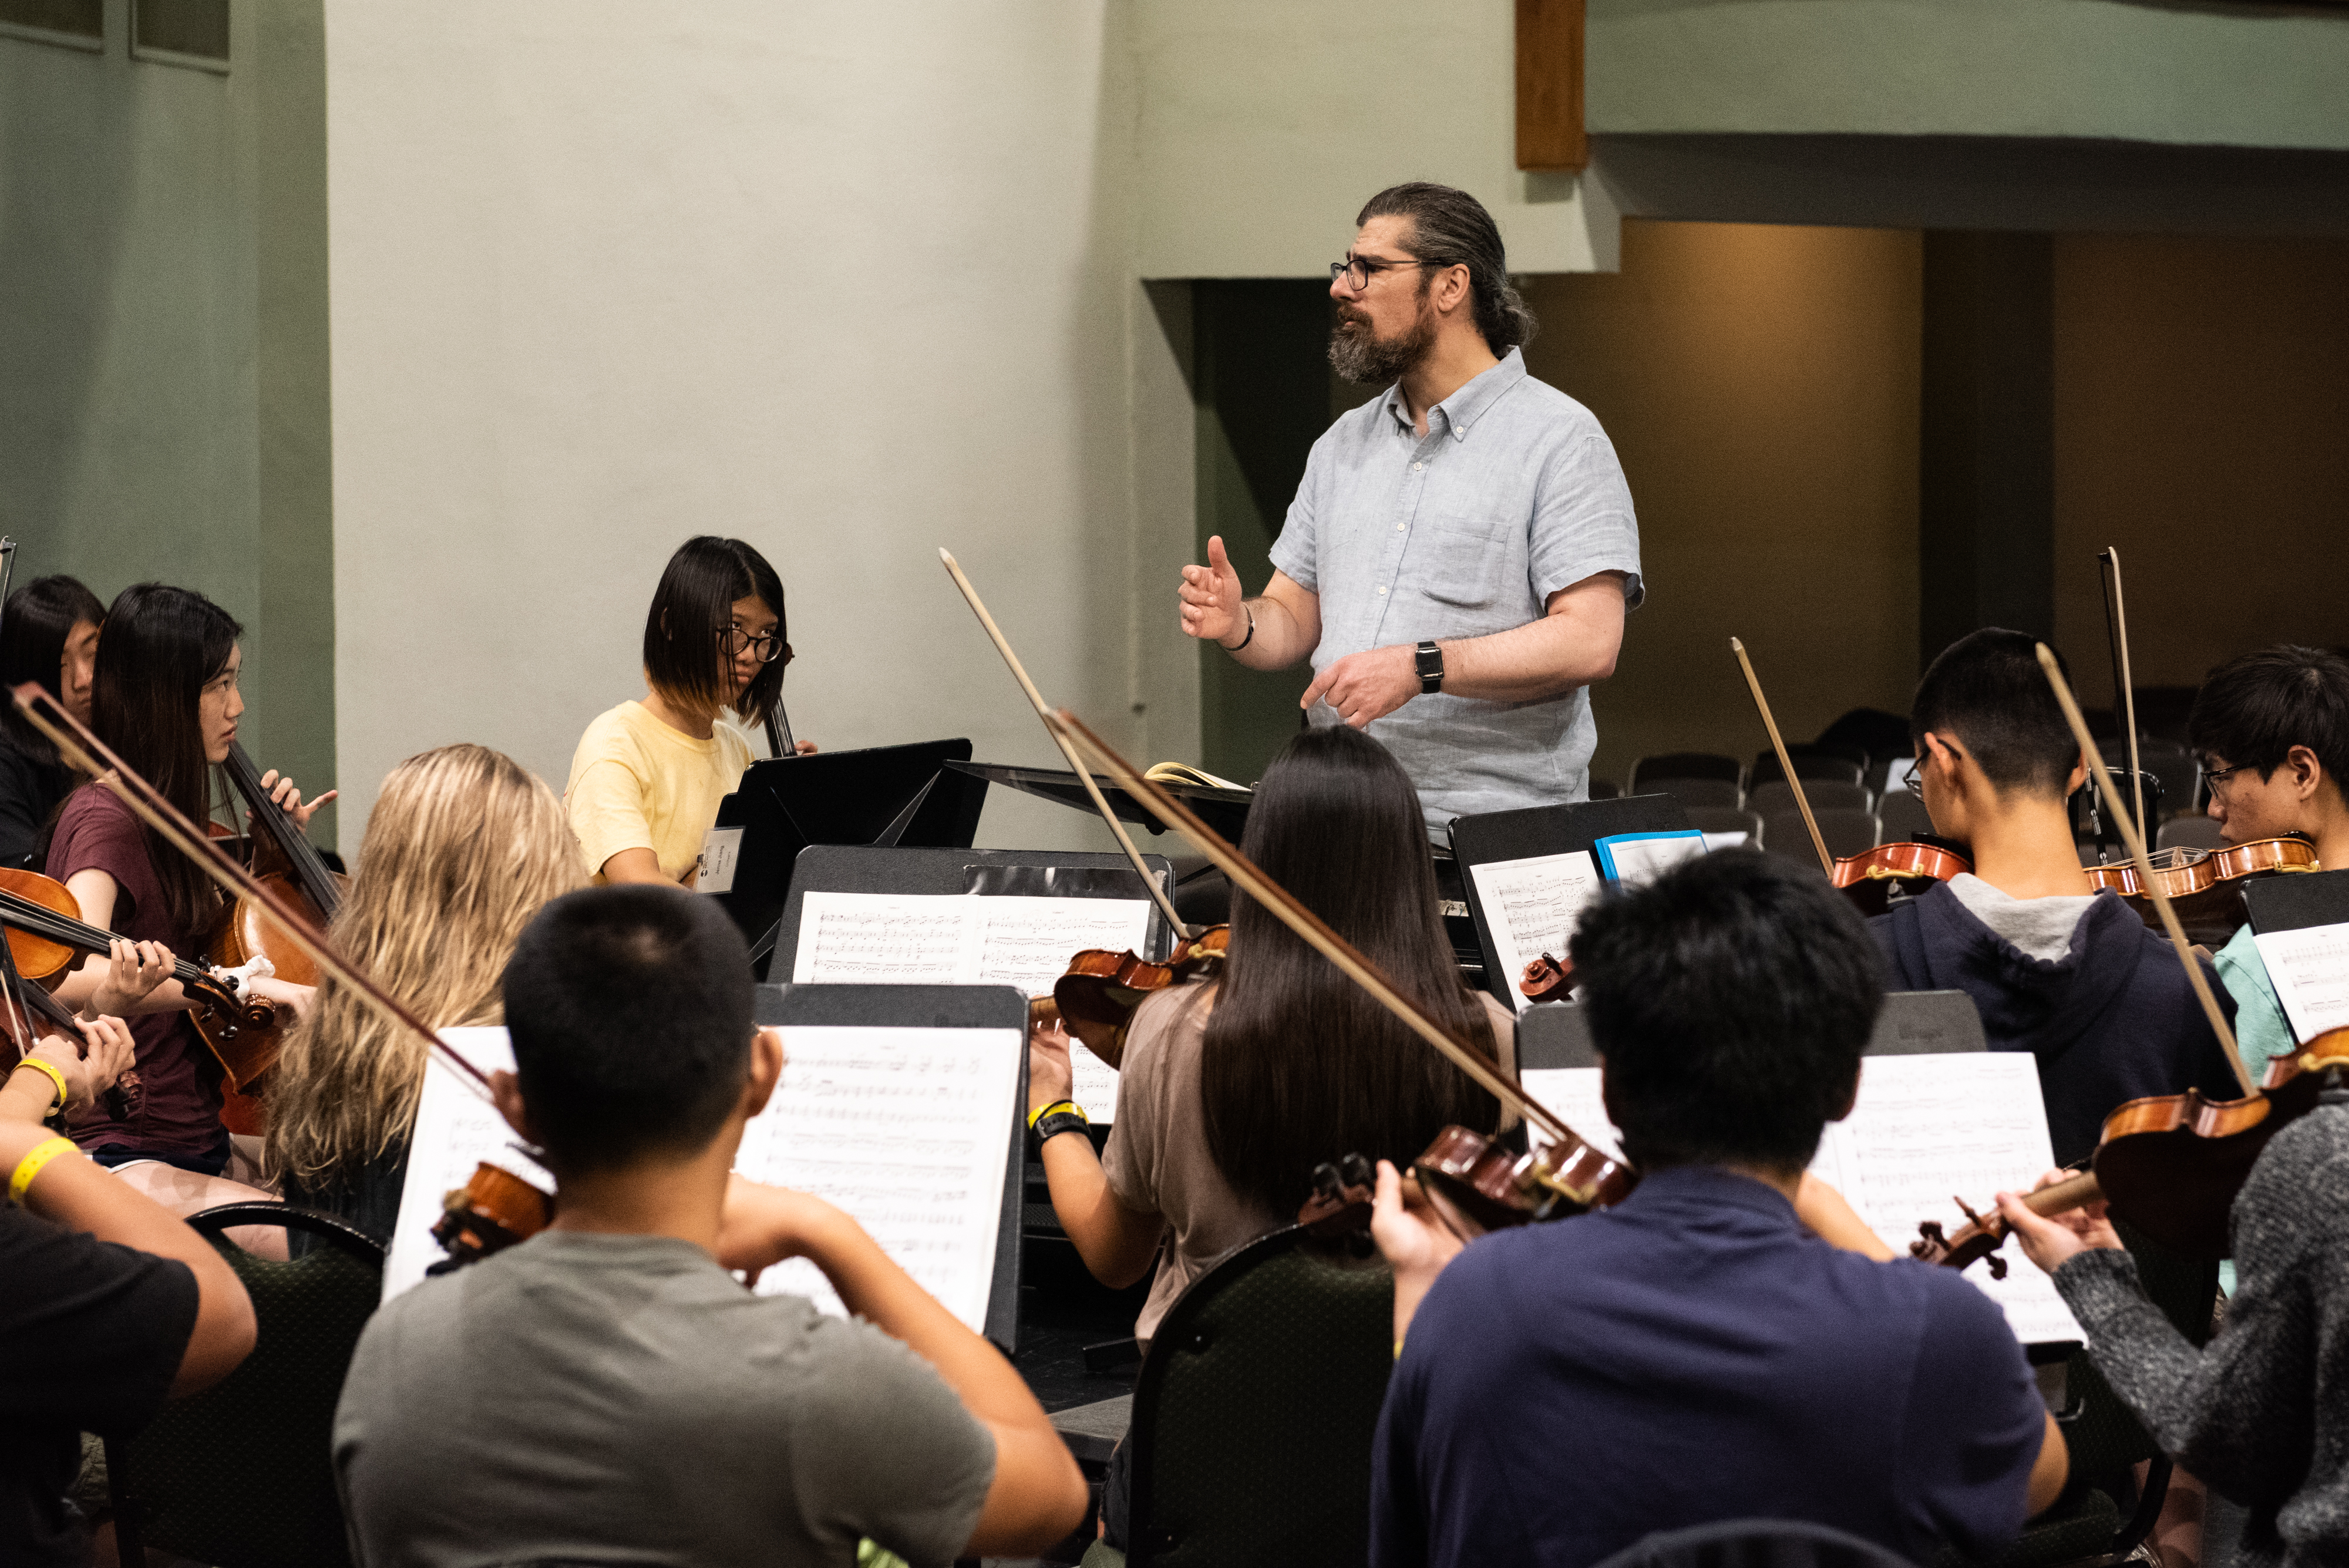 An orchestra performs indoors as the conductor directs at the front of the crowd